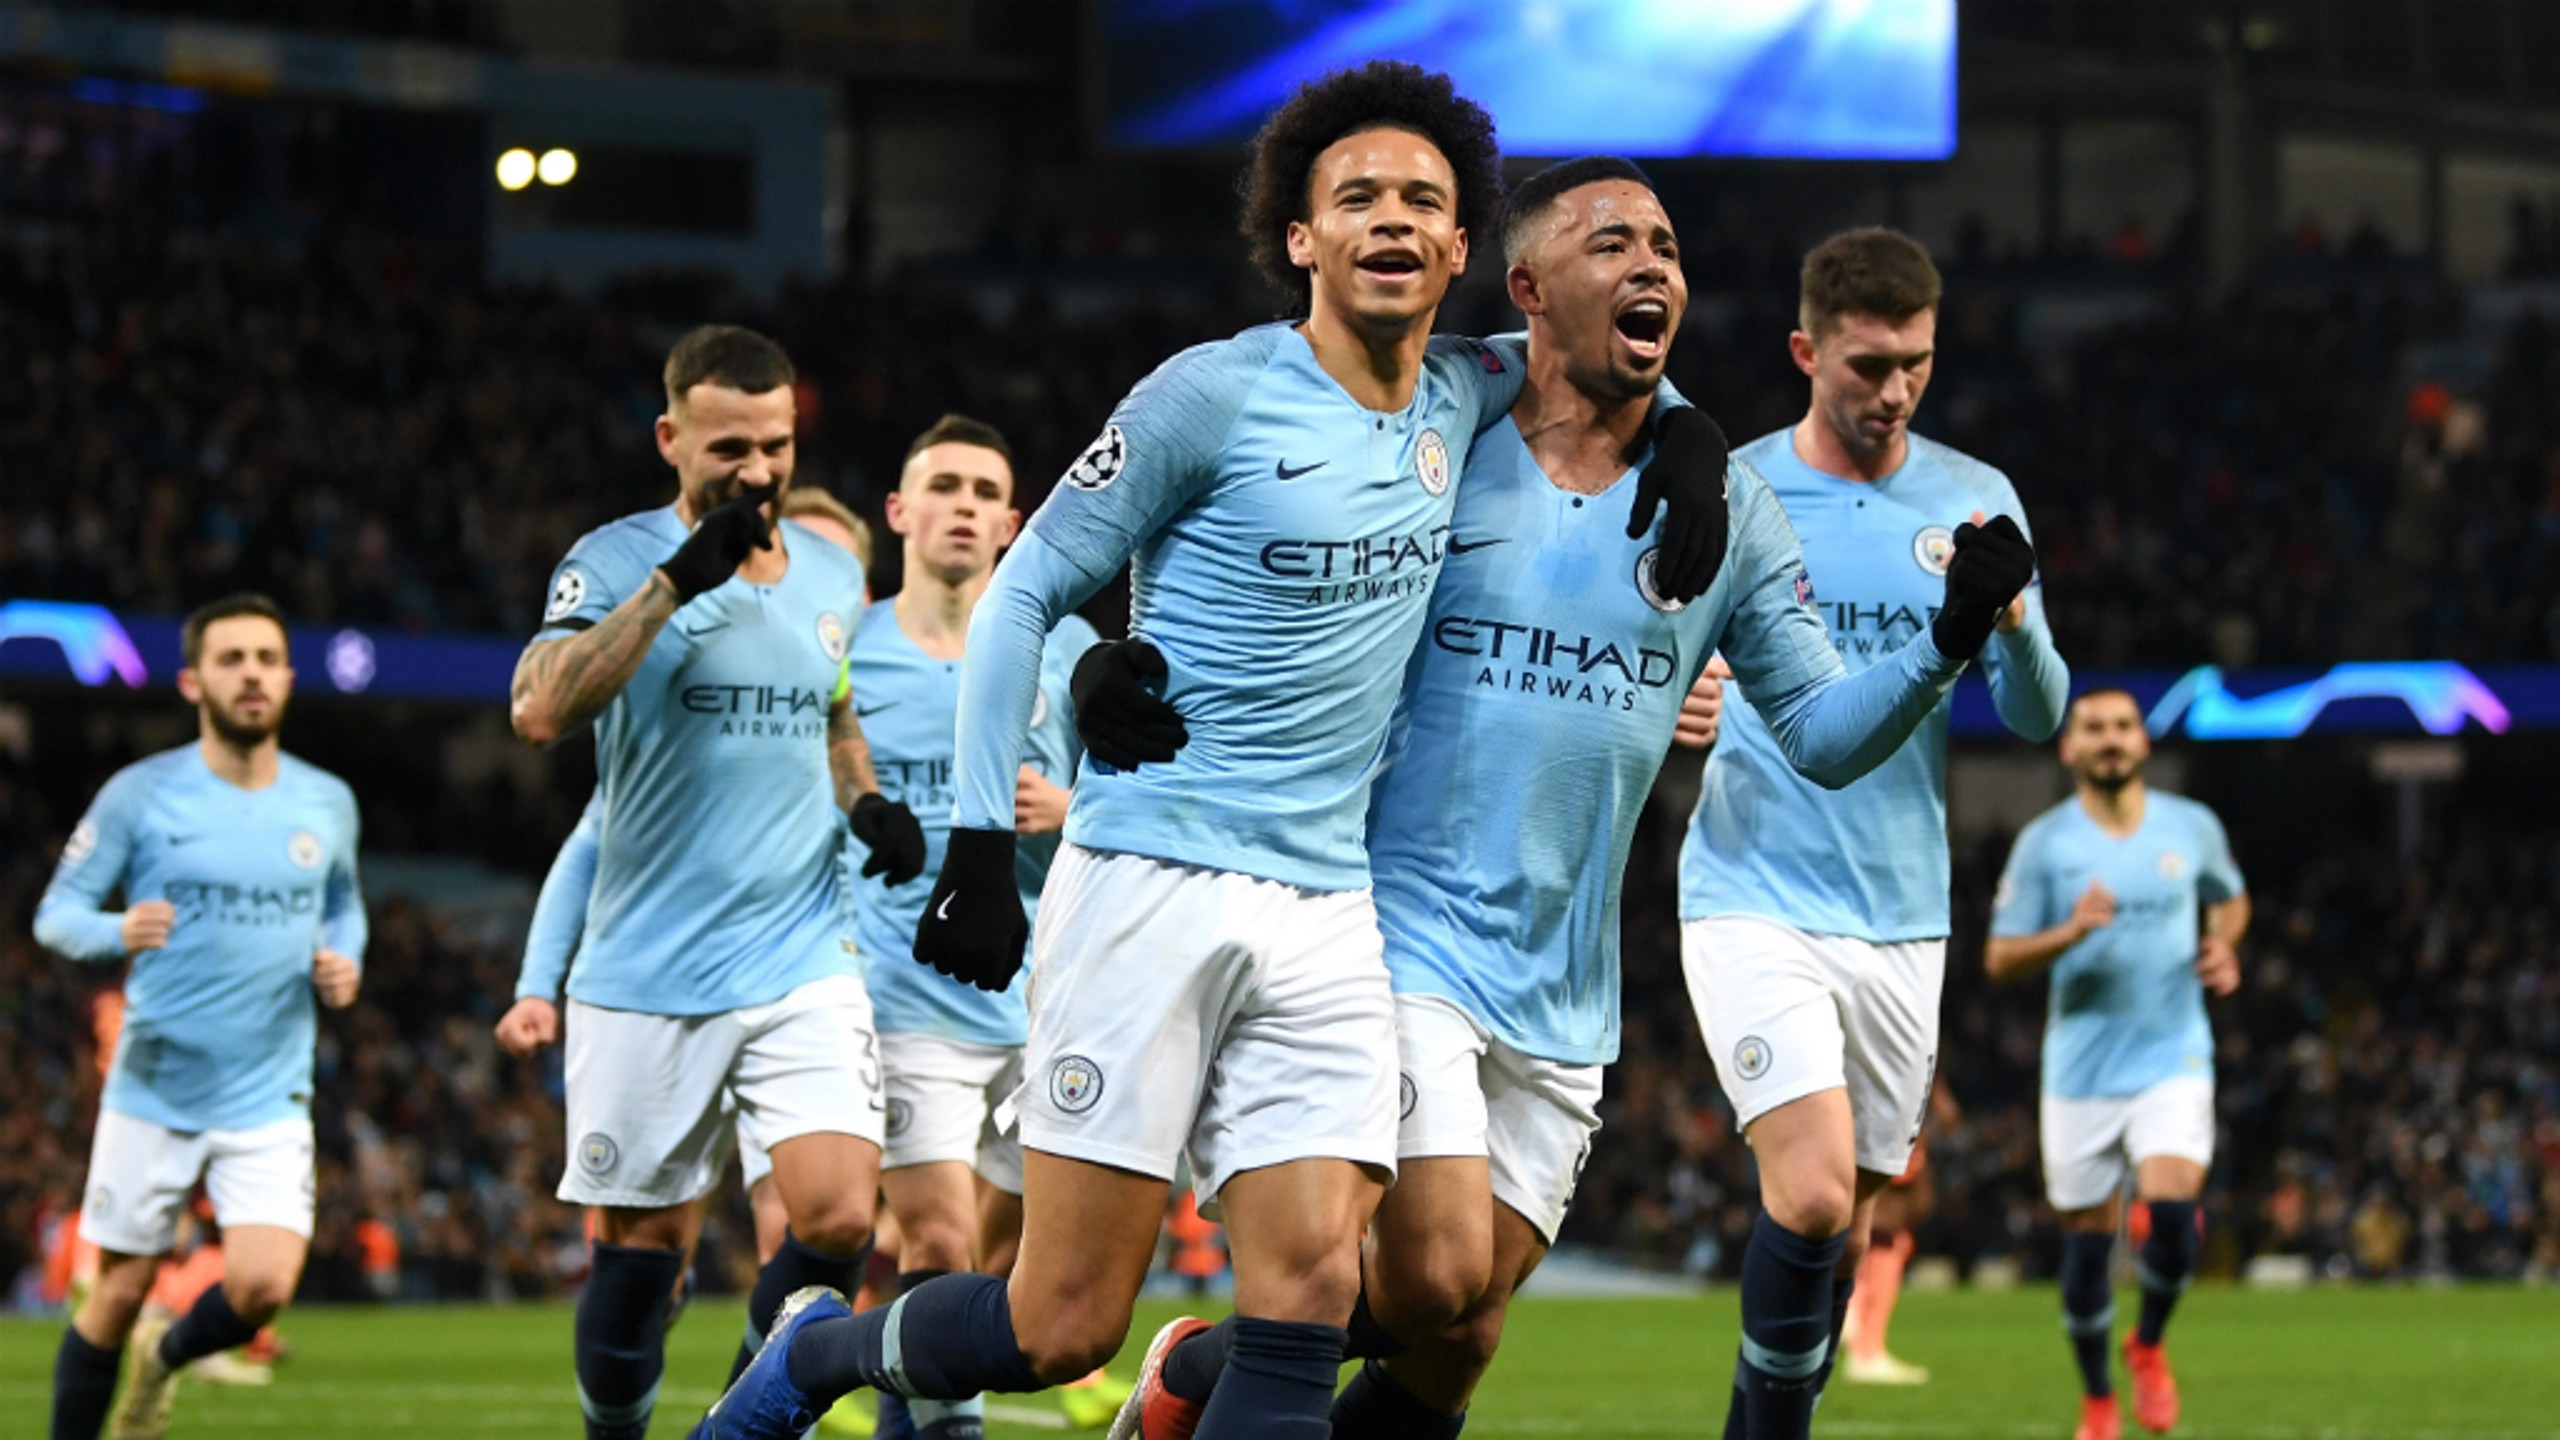 BLUE JOY: The team congratulate the winger on his stunning strike